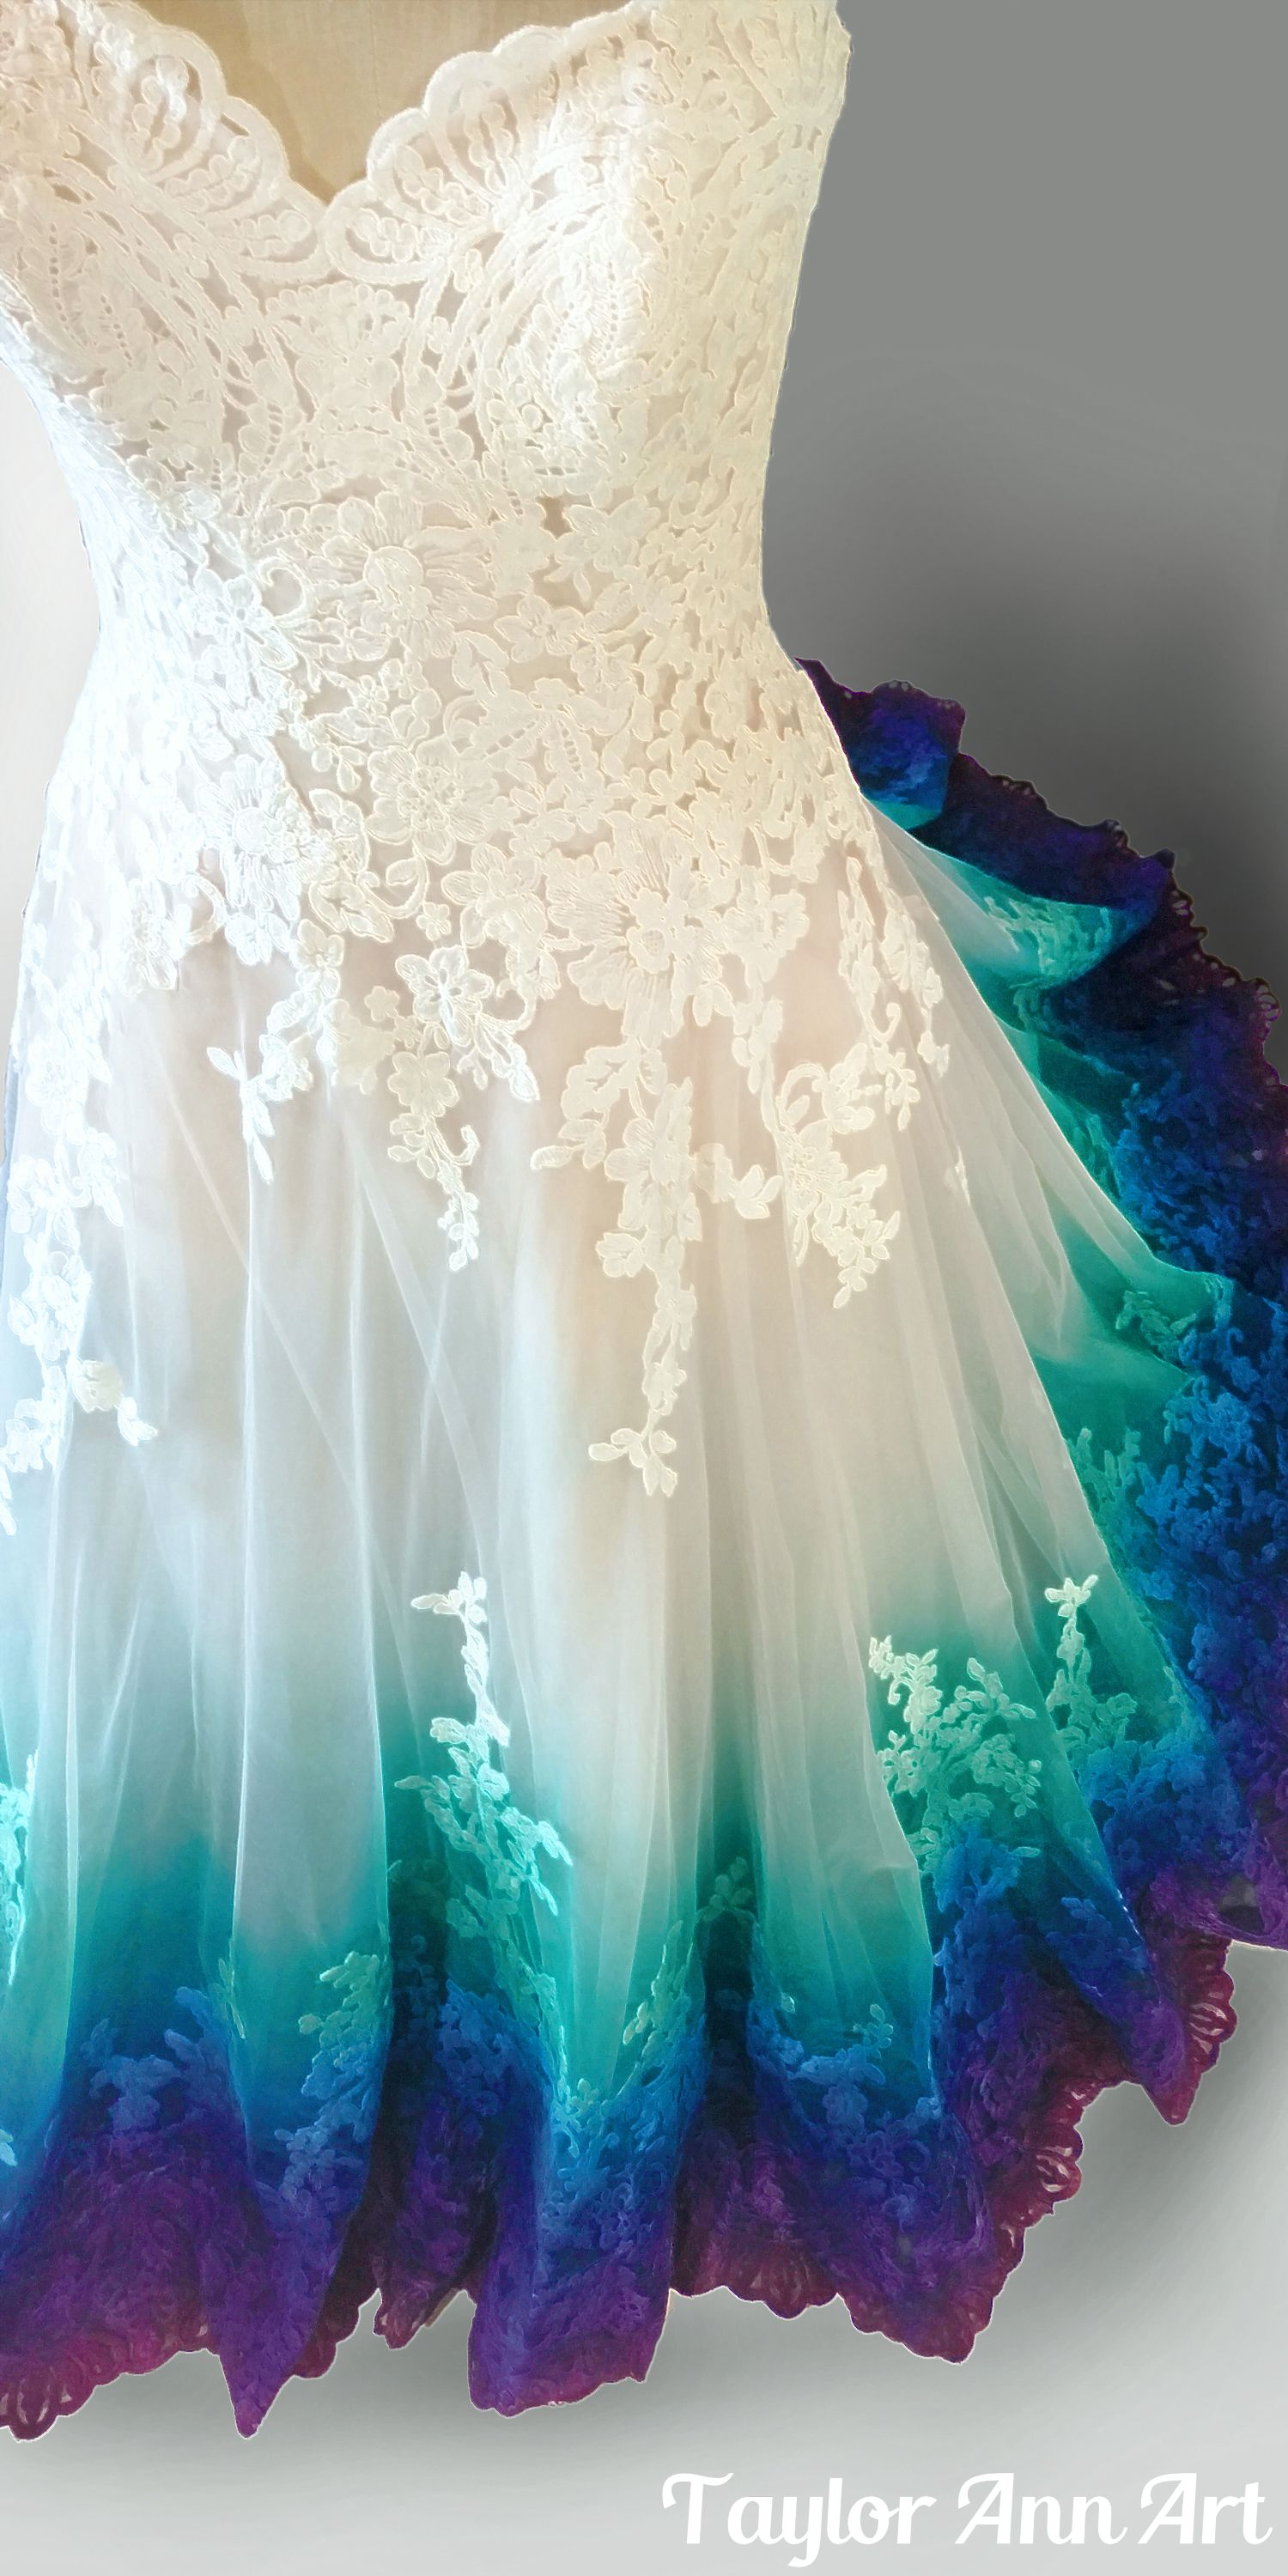 Peacock dress coloring by taylor ann art click the image for more